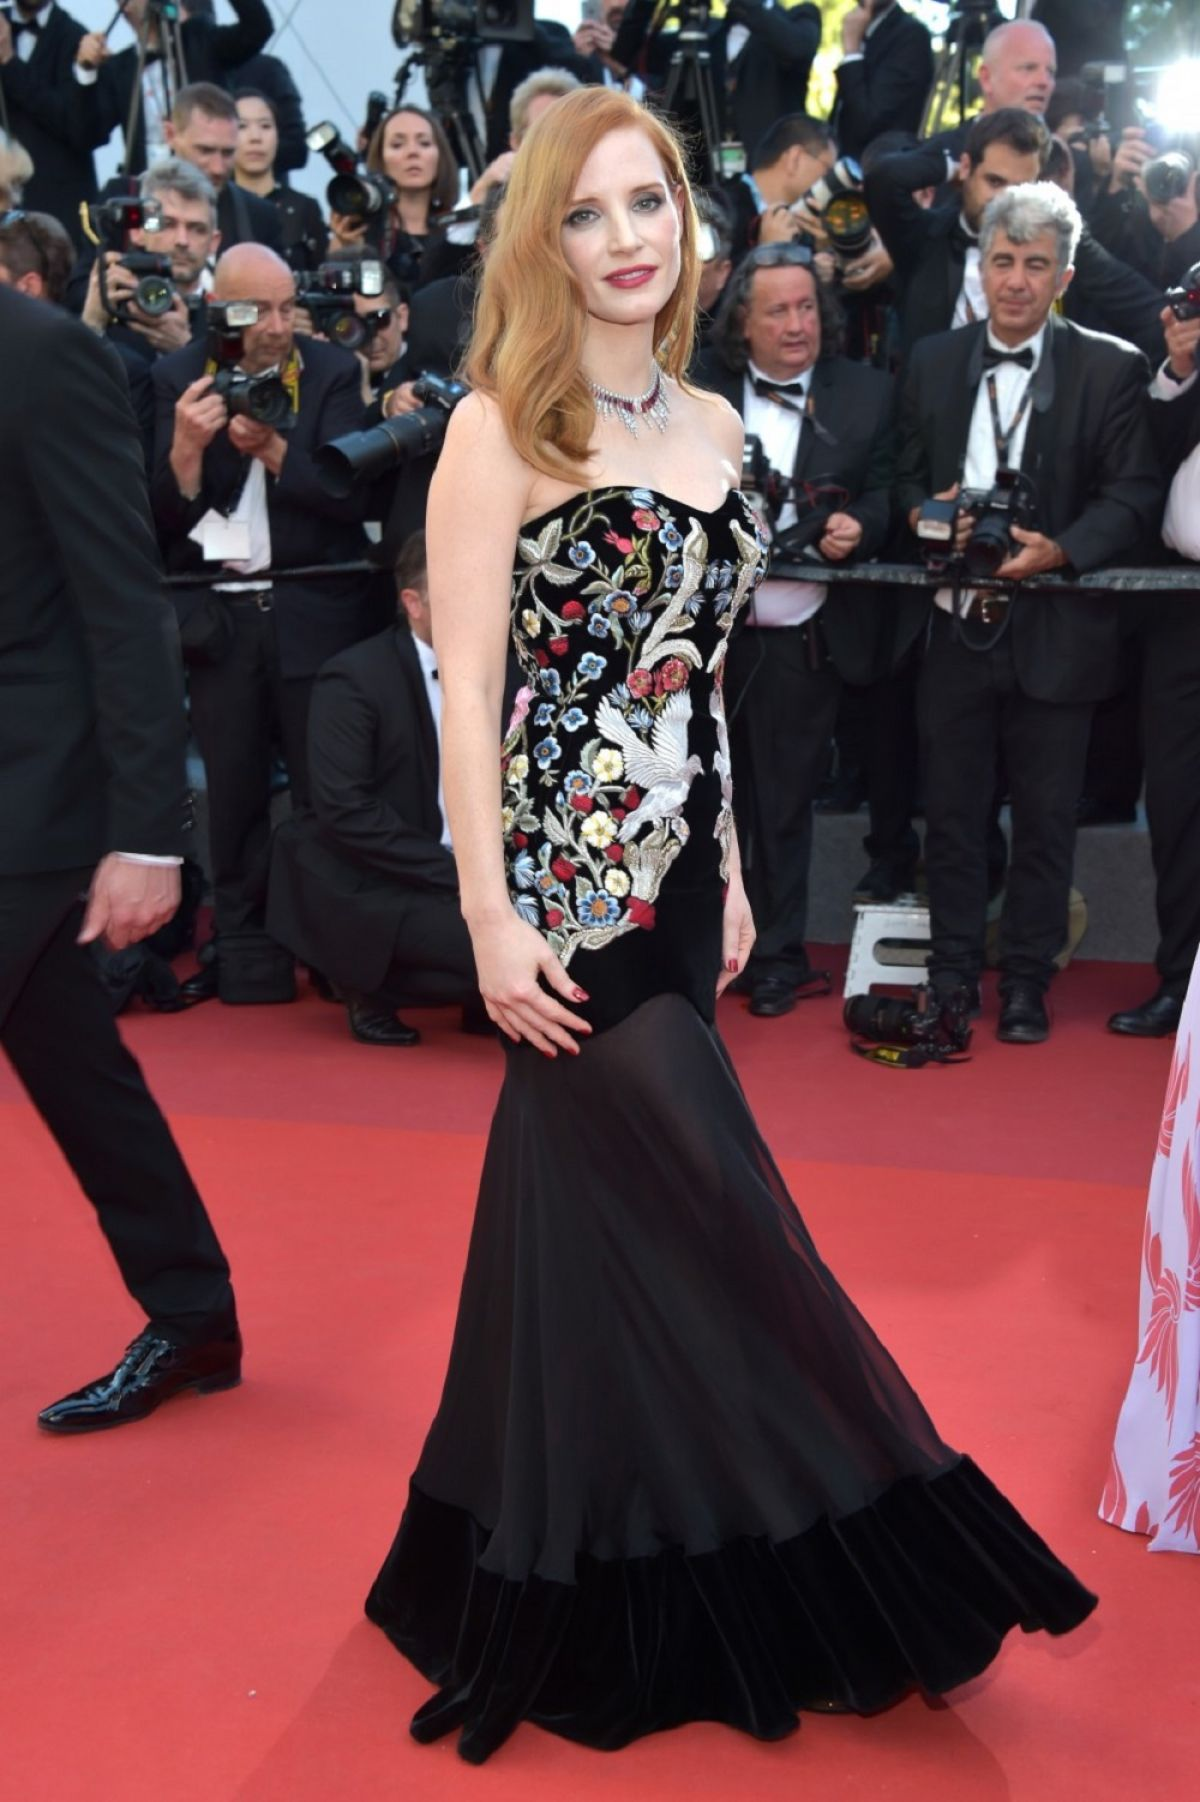 jessica-chastain-at-ismael-s-ghosts-screening-and-opening-gala-at-70th-annual-cannes-film-festival-05-17-2017_1